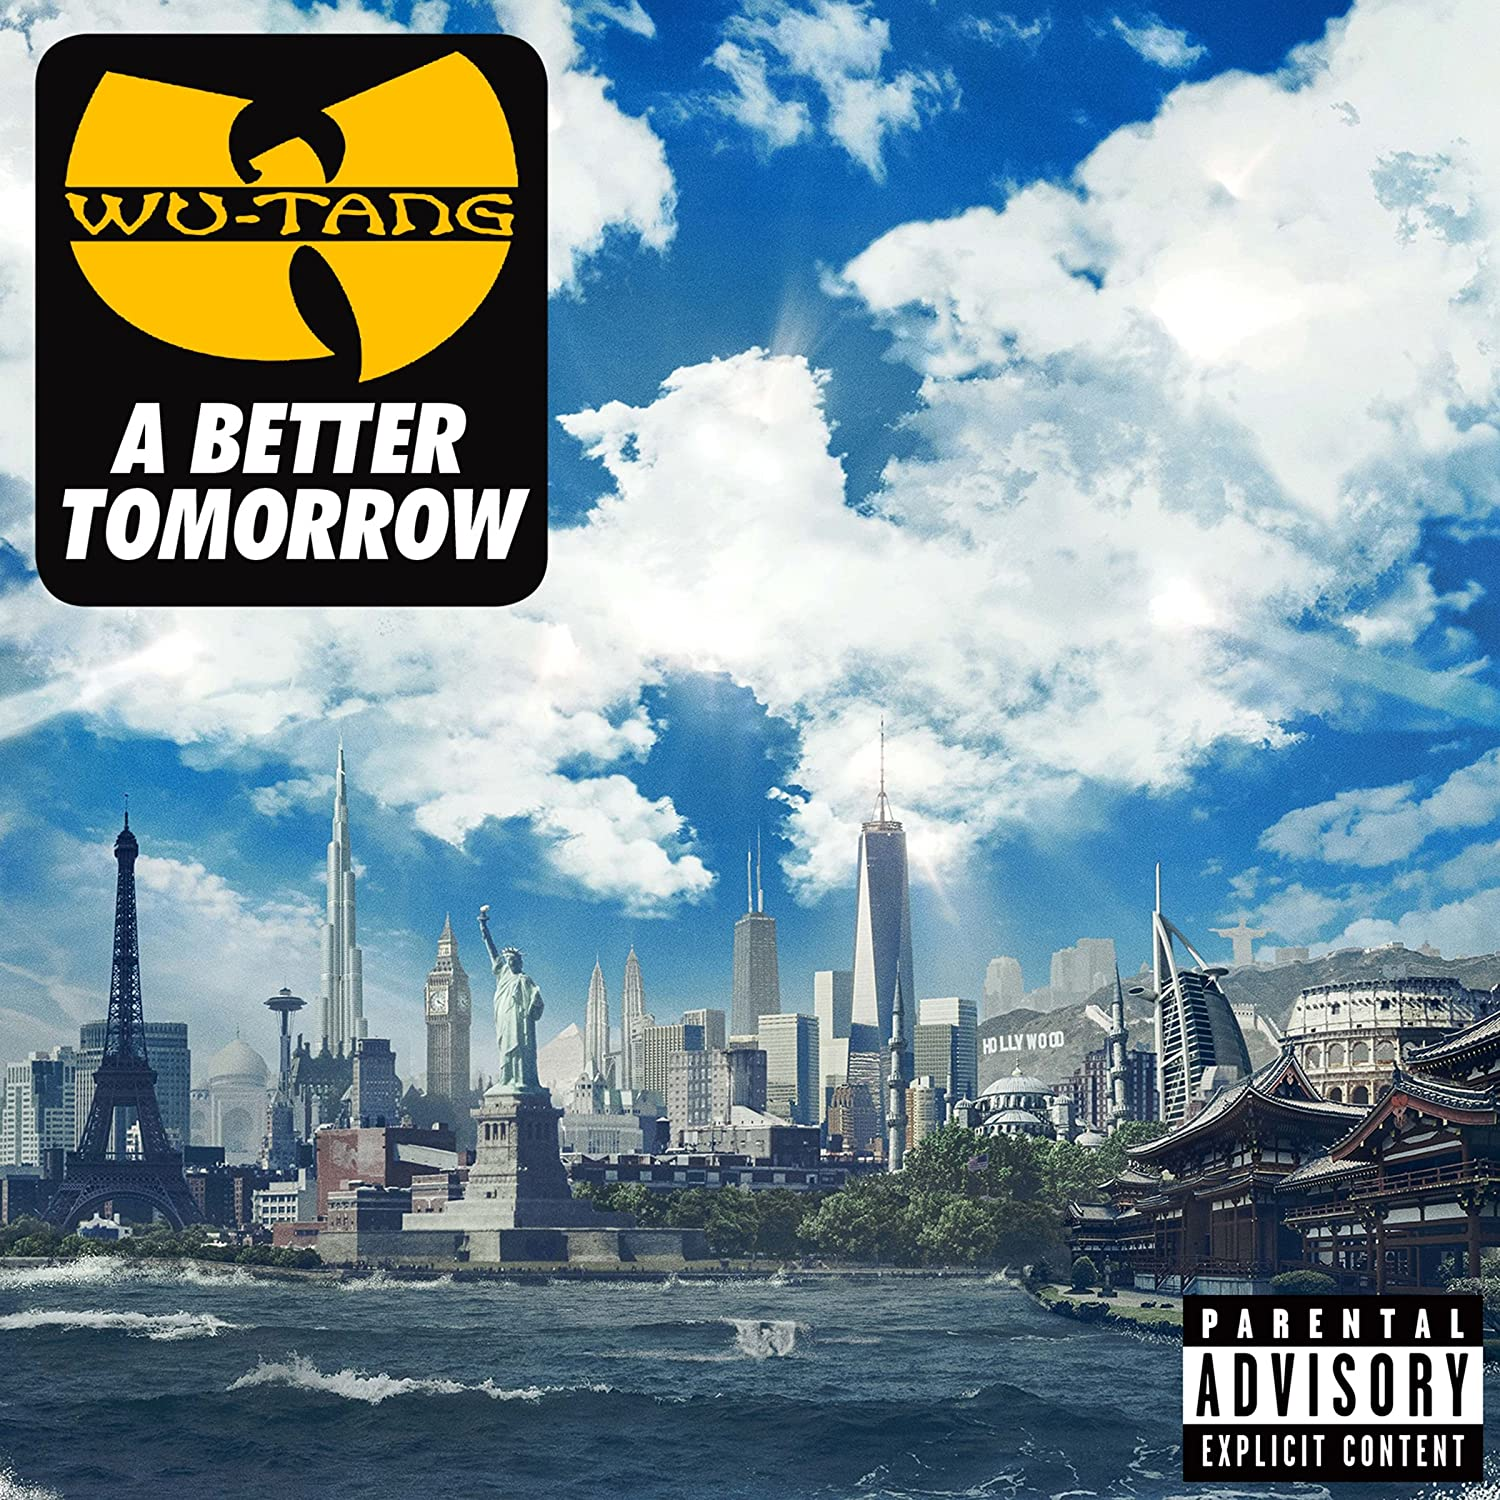 Wu-Tang Clan, A Better Tomorrow